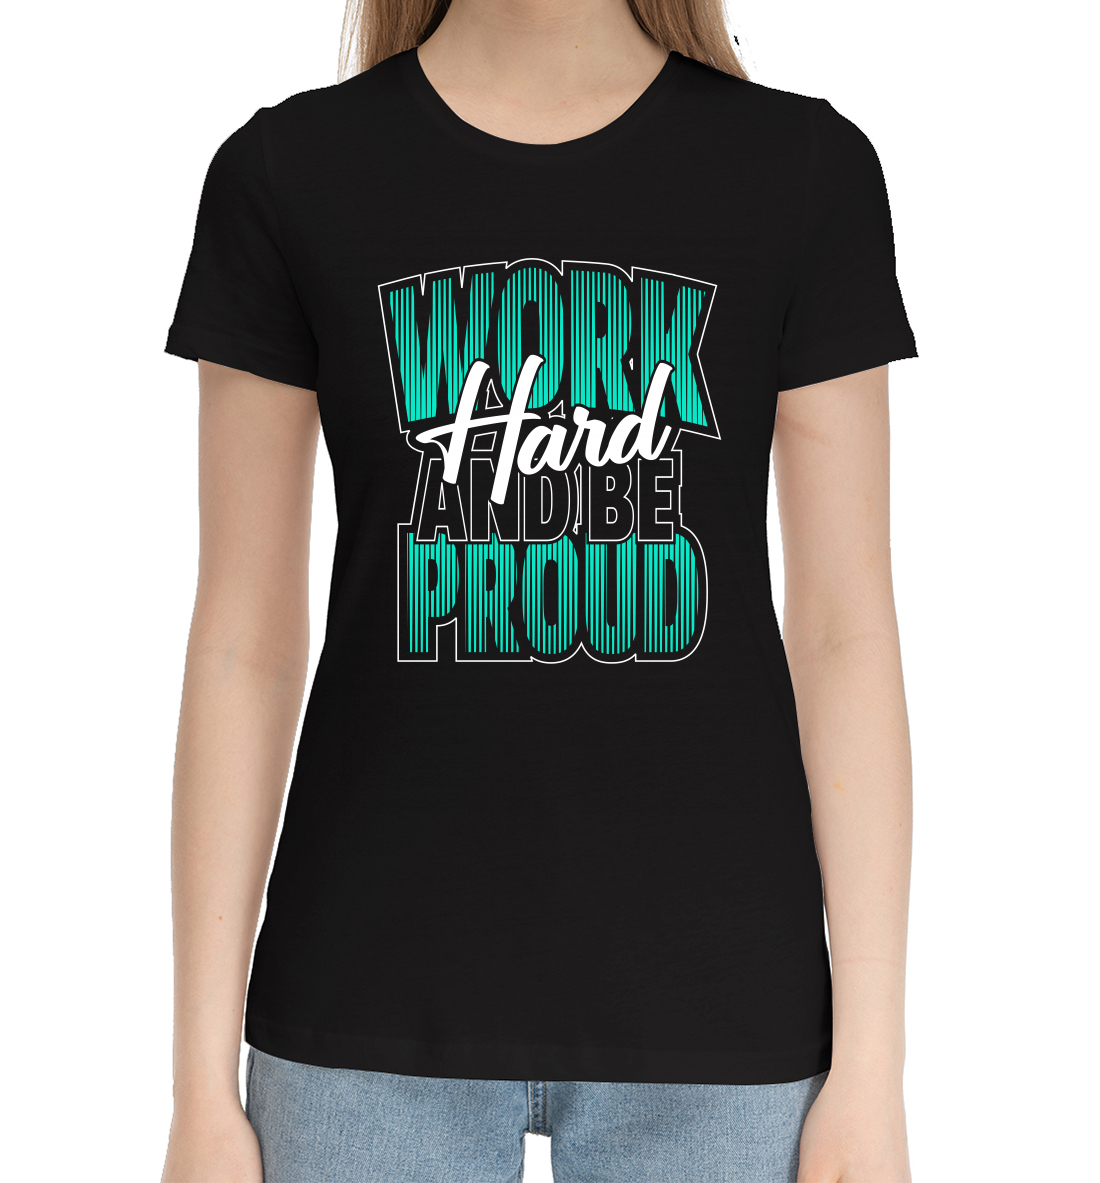 Work hard and be proud